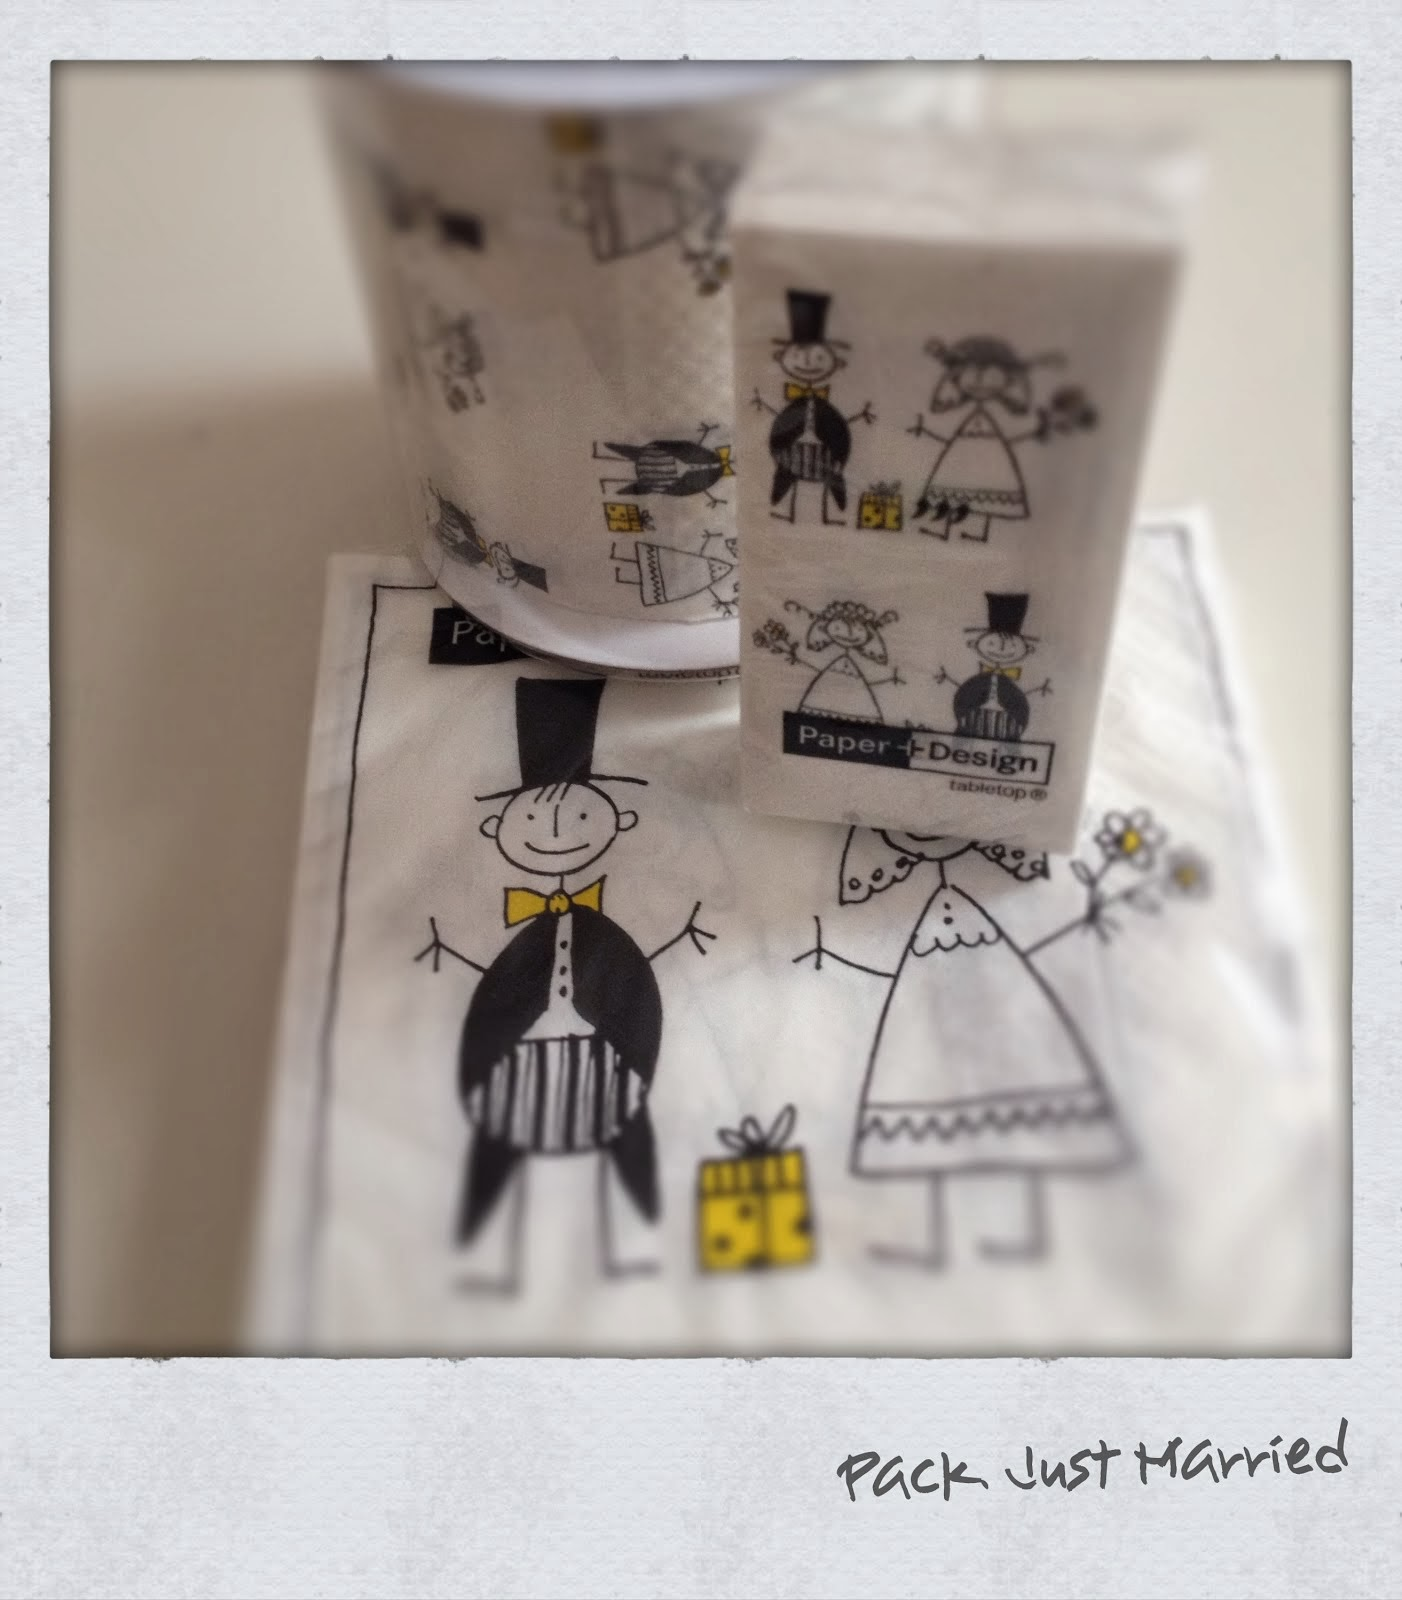 Pack Just Married 5 €